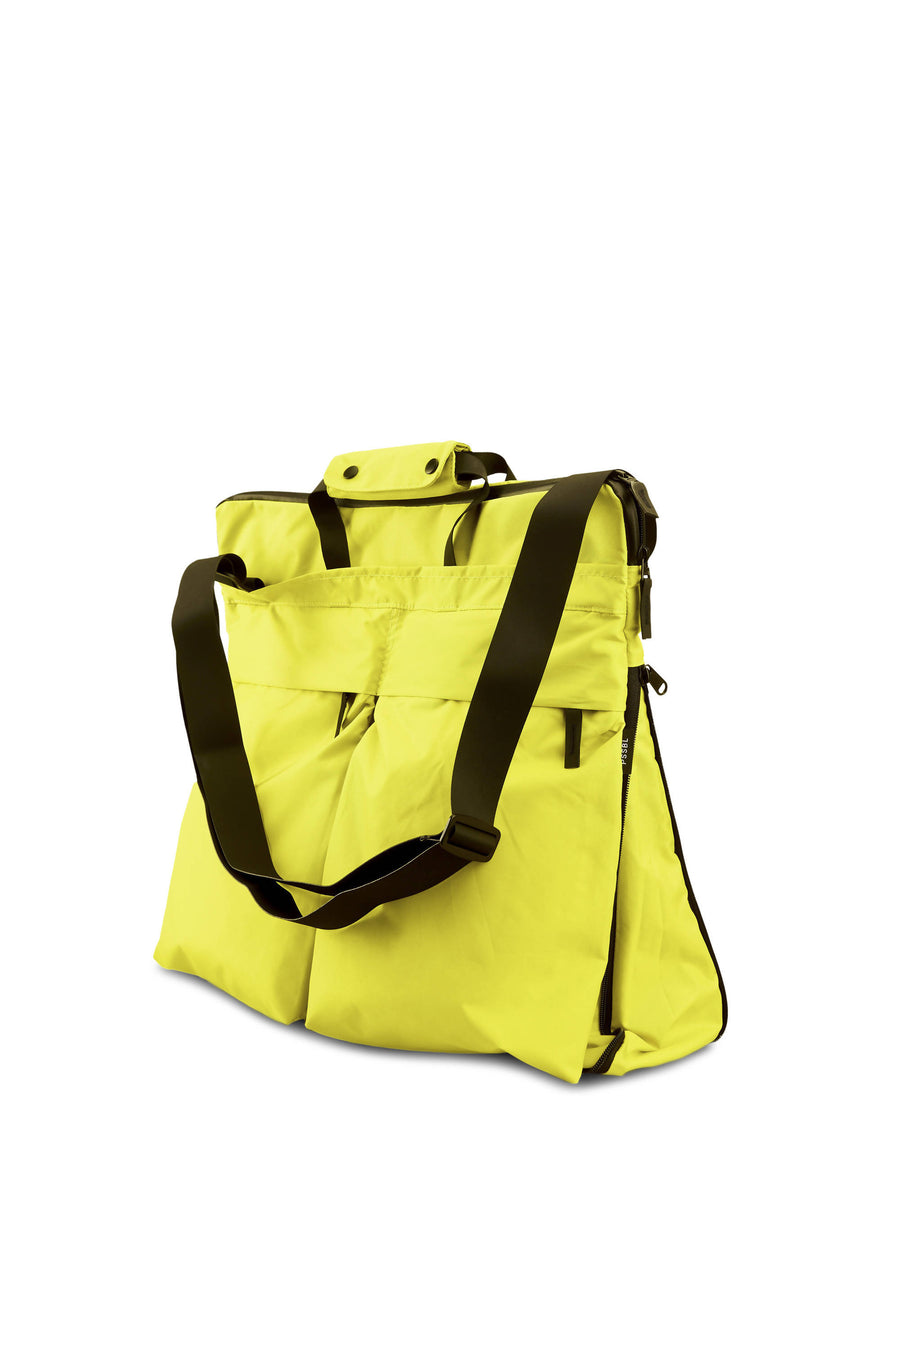 PSSBL THE TOTE YELLOW